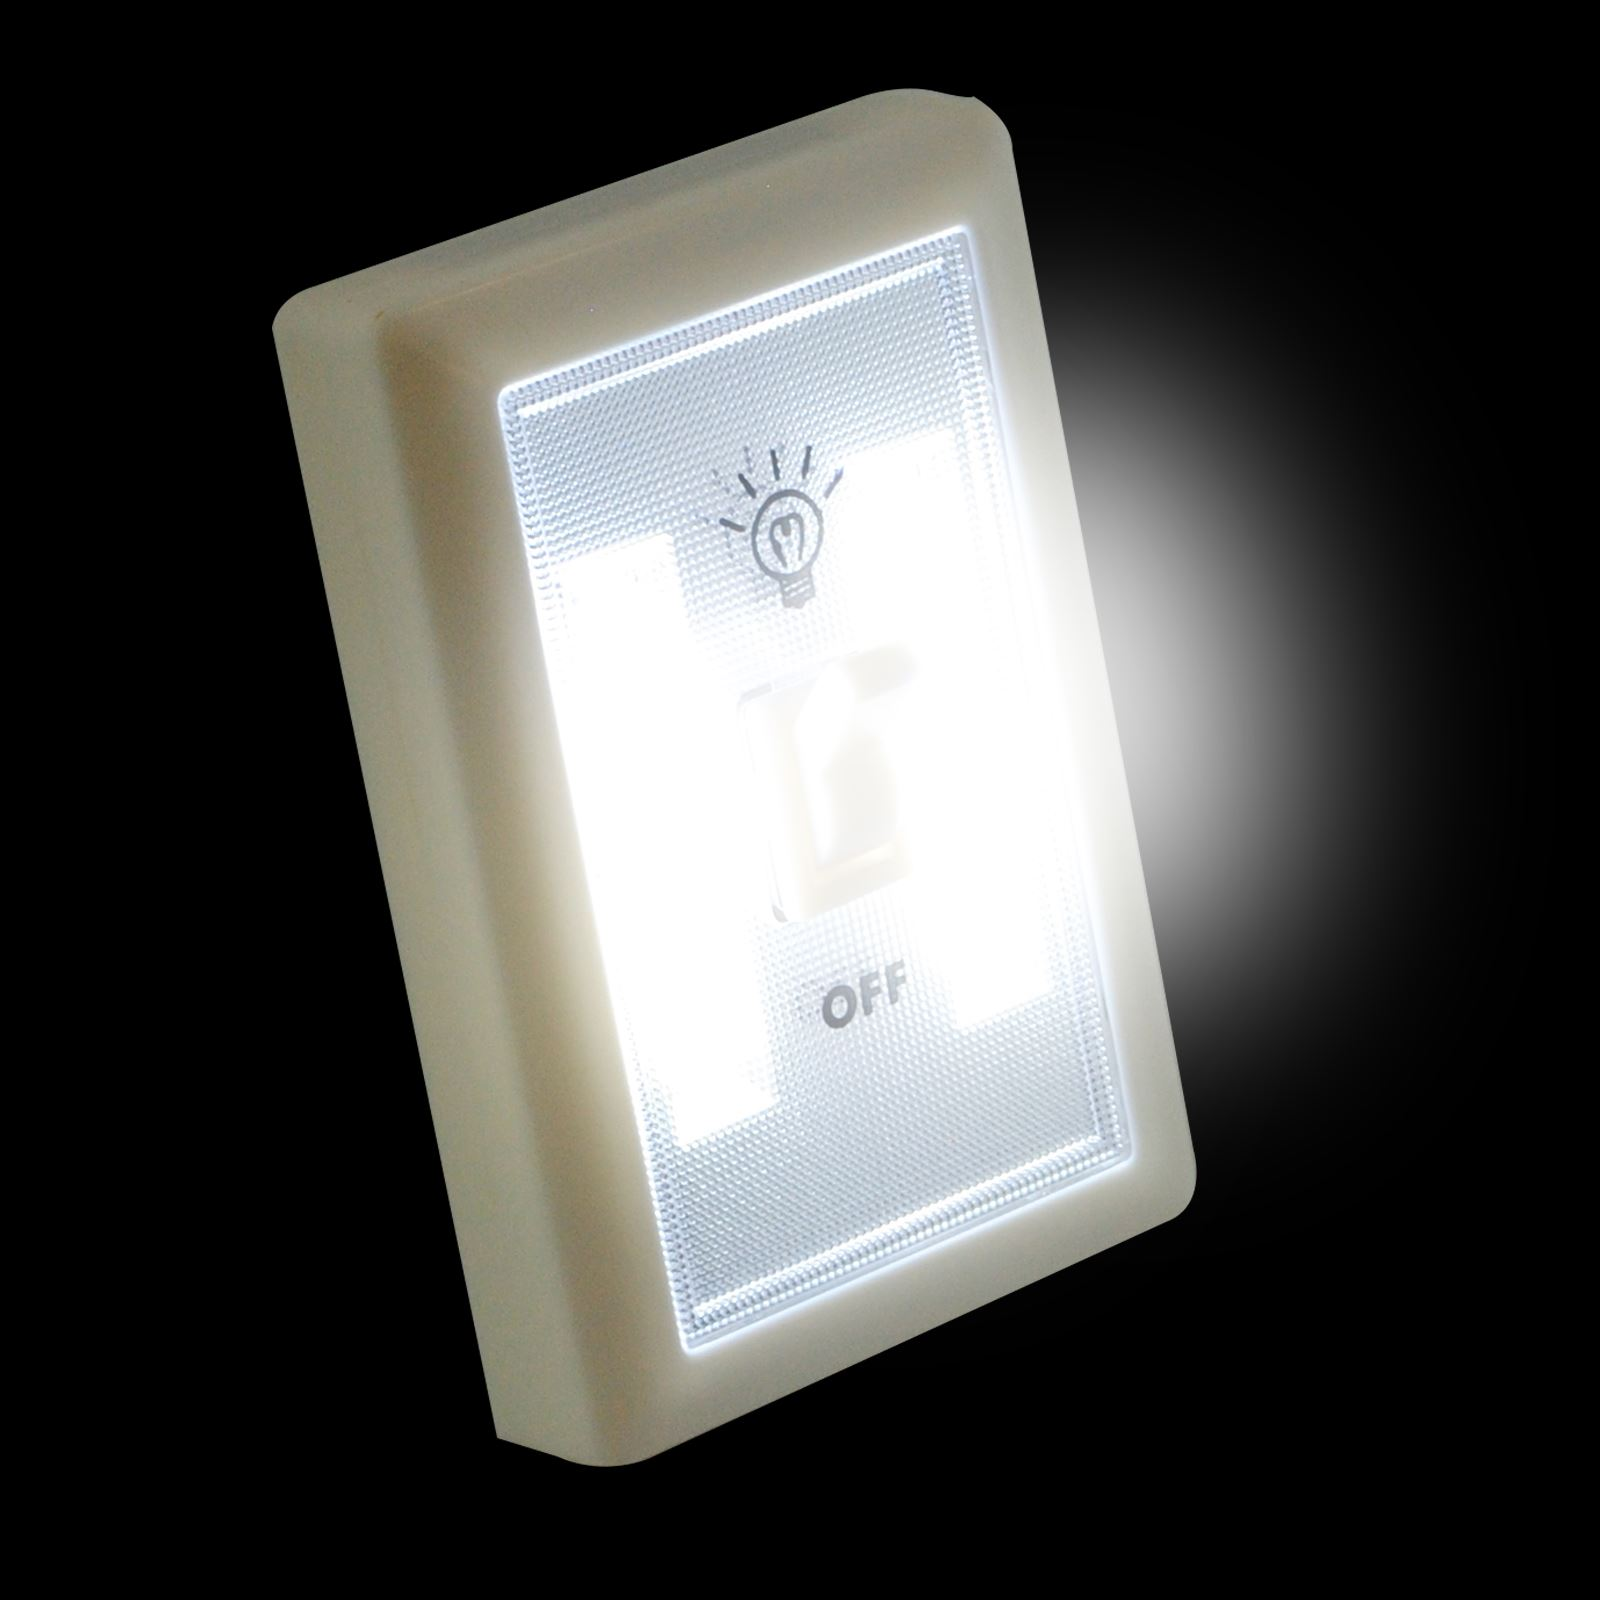 2w cob led light switch super bright portable night lamp battery powered no wire ebay. Black Bedroom Furniture Sets. Home Design Ideas